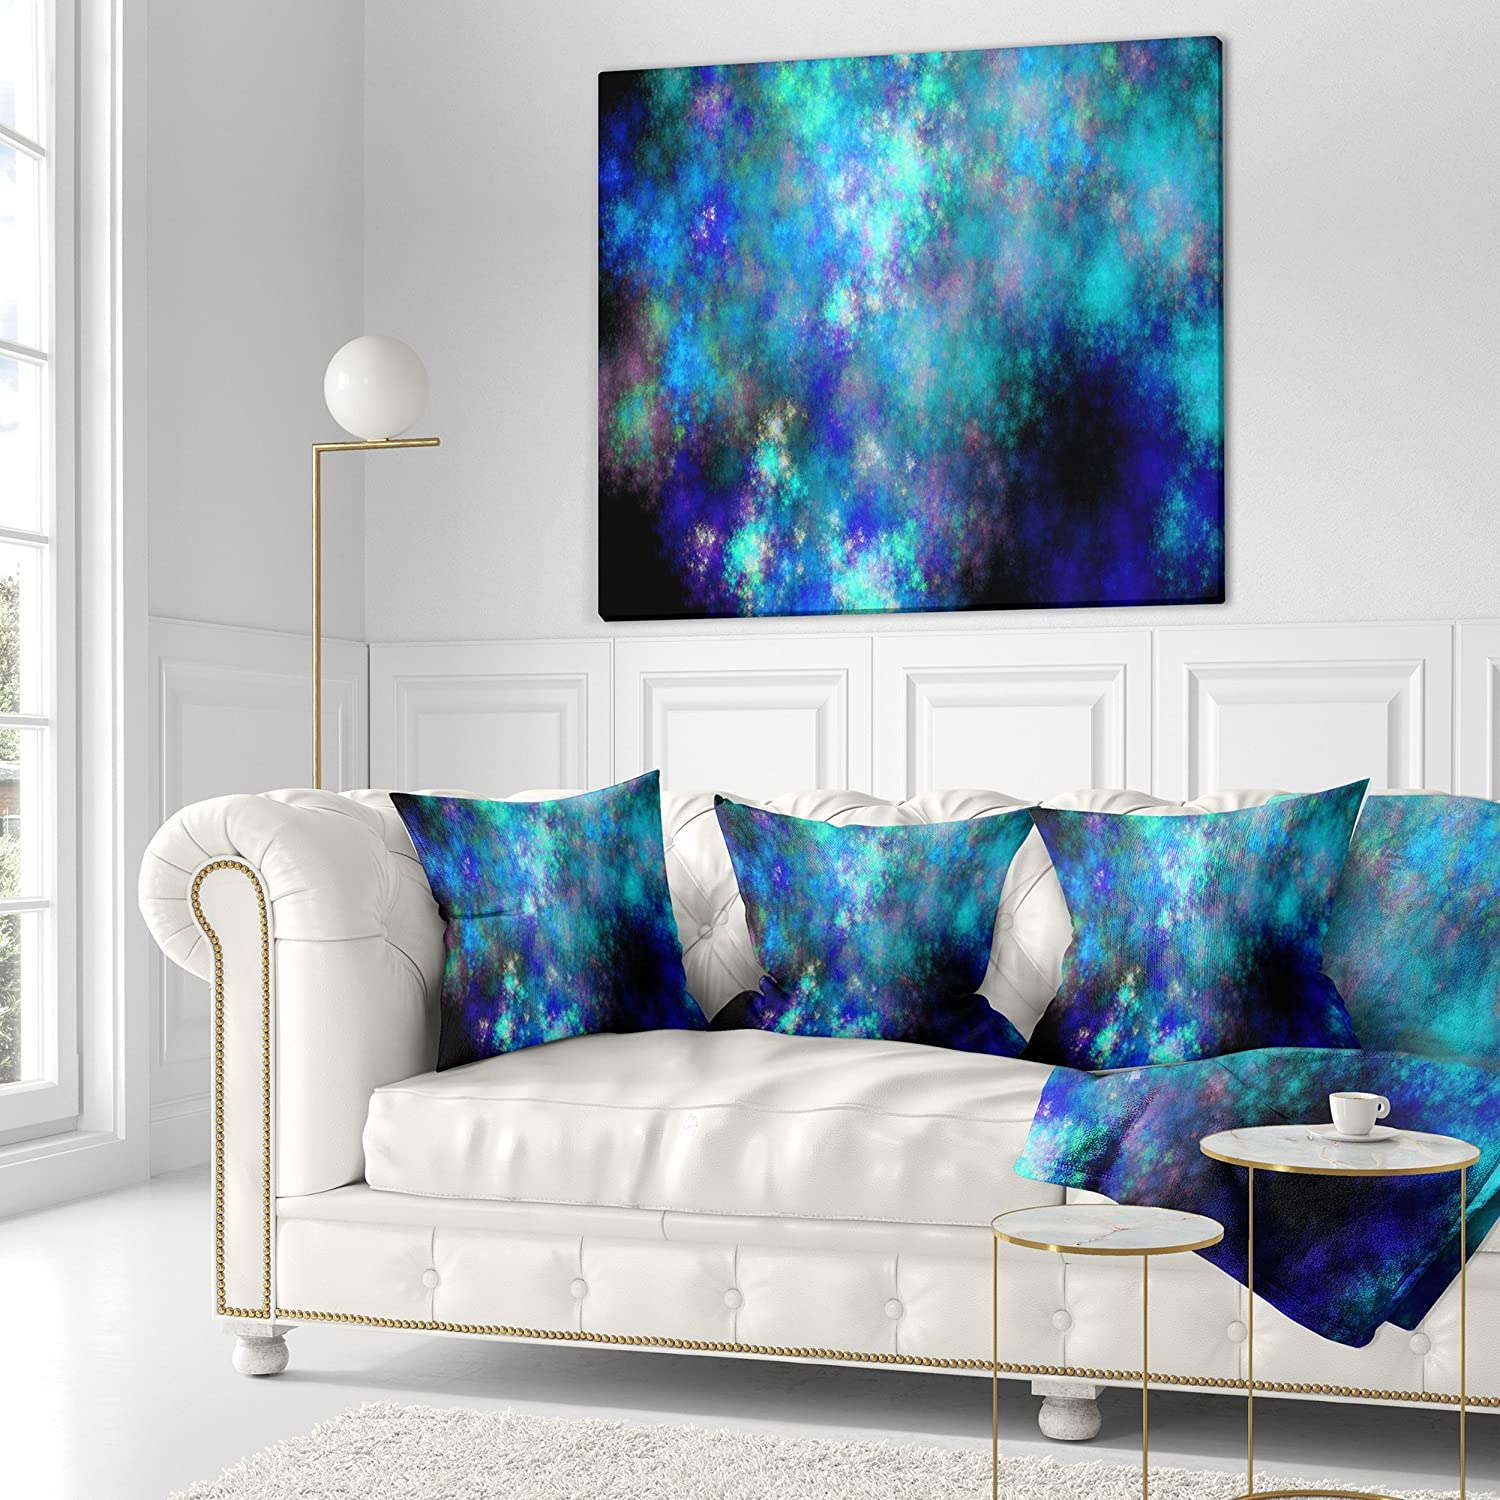 Sofa Throw Pillow 18 x 18 Insert Printed on Both Side Designart CU16216-18-18 Light Blue Starry Fractal Sky Contemporary Cushion Cover for Living Room